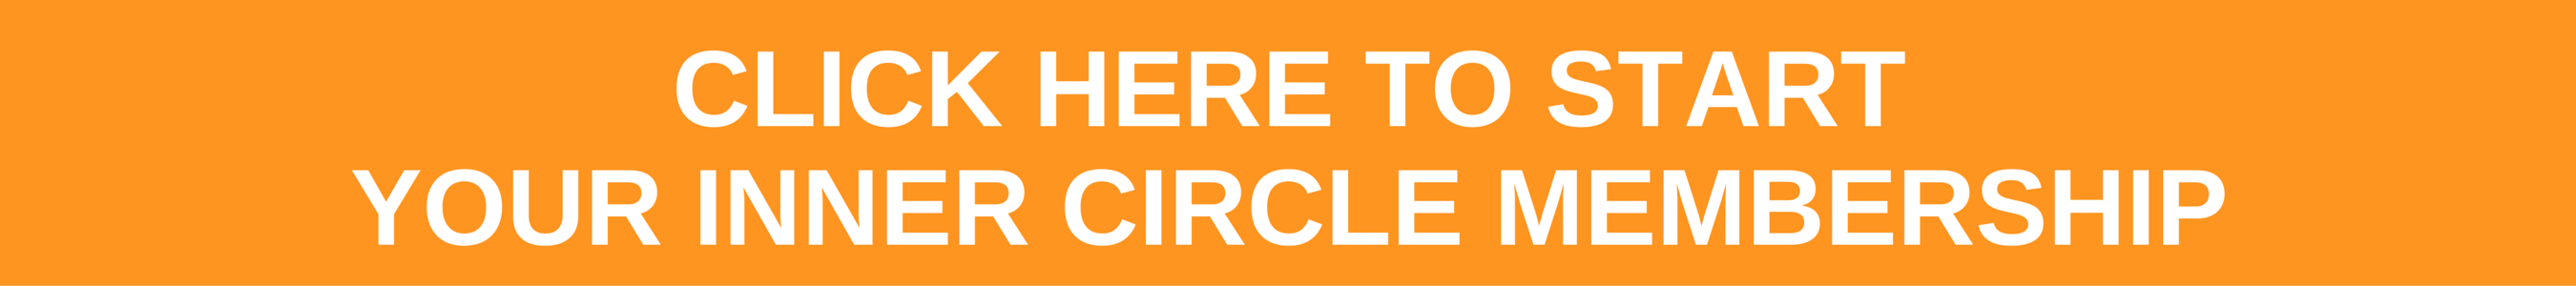 Start Your Inner Circle Membership Now